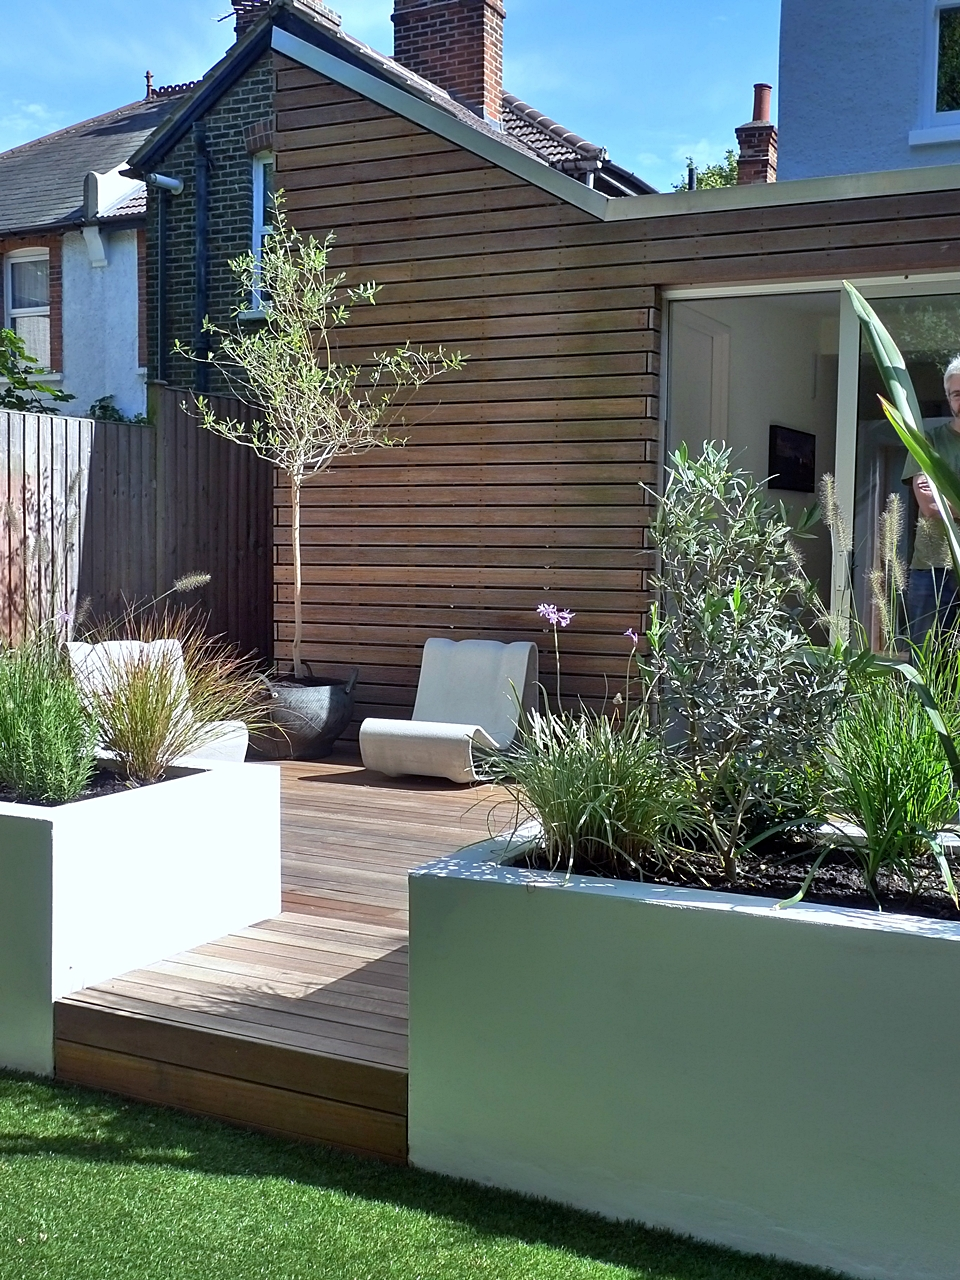 Modern style and design in a london garden london garden for Modern garden design